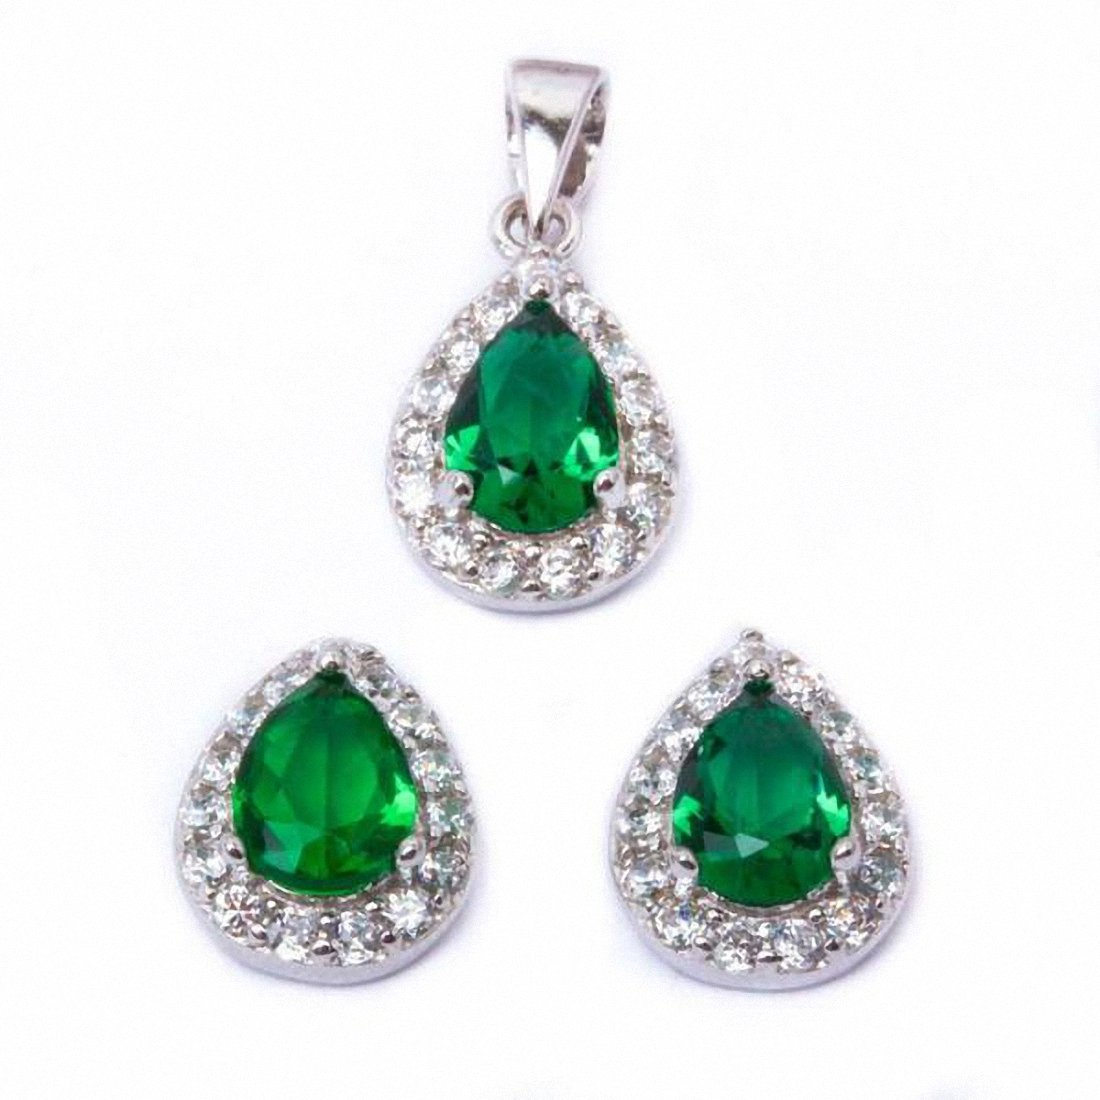 Halo Bridal Jewelry Set Teardro Pear Round Cubic Zirconia 925 Sterling Silver Choose Color